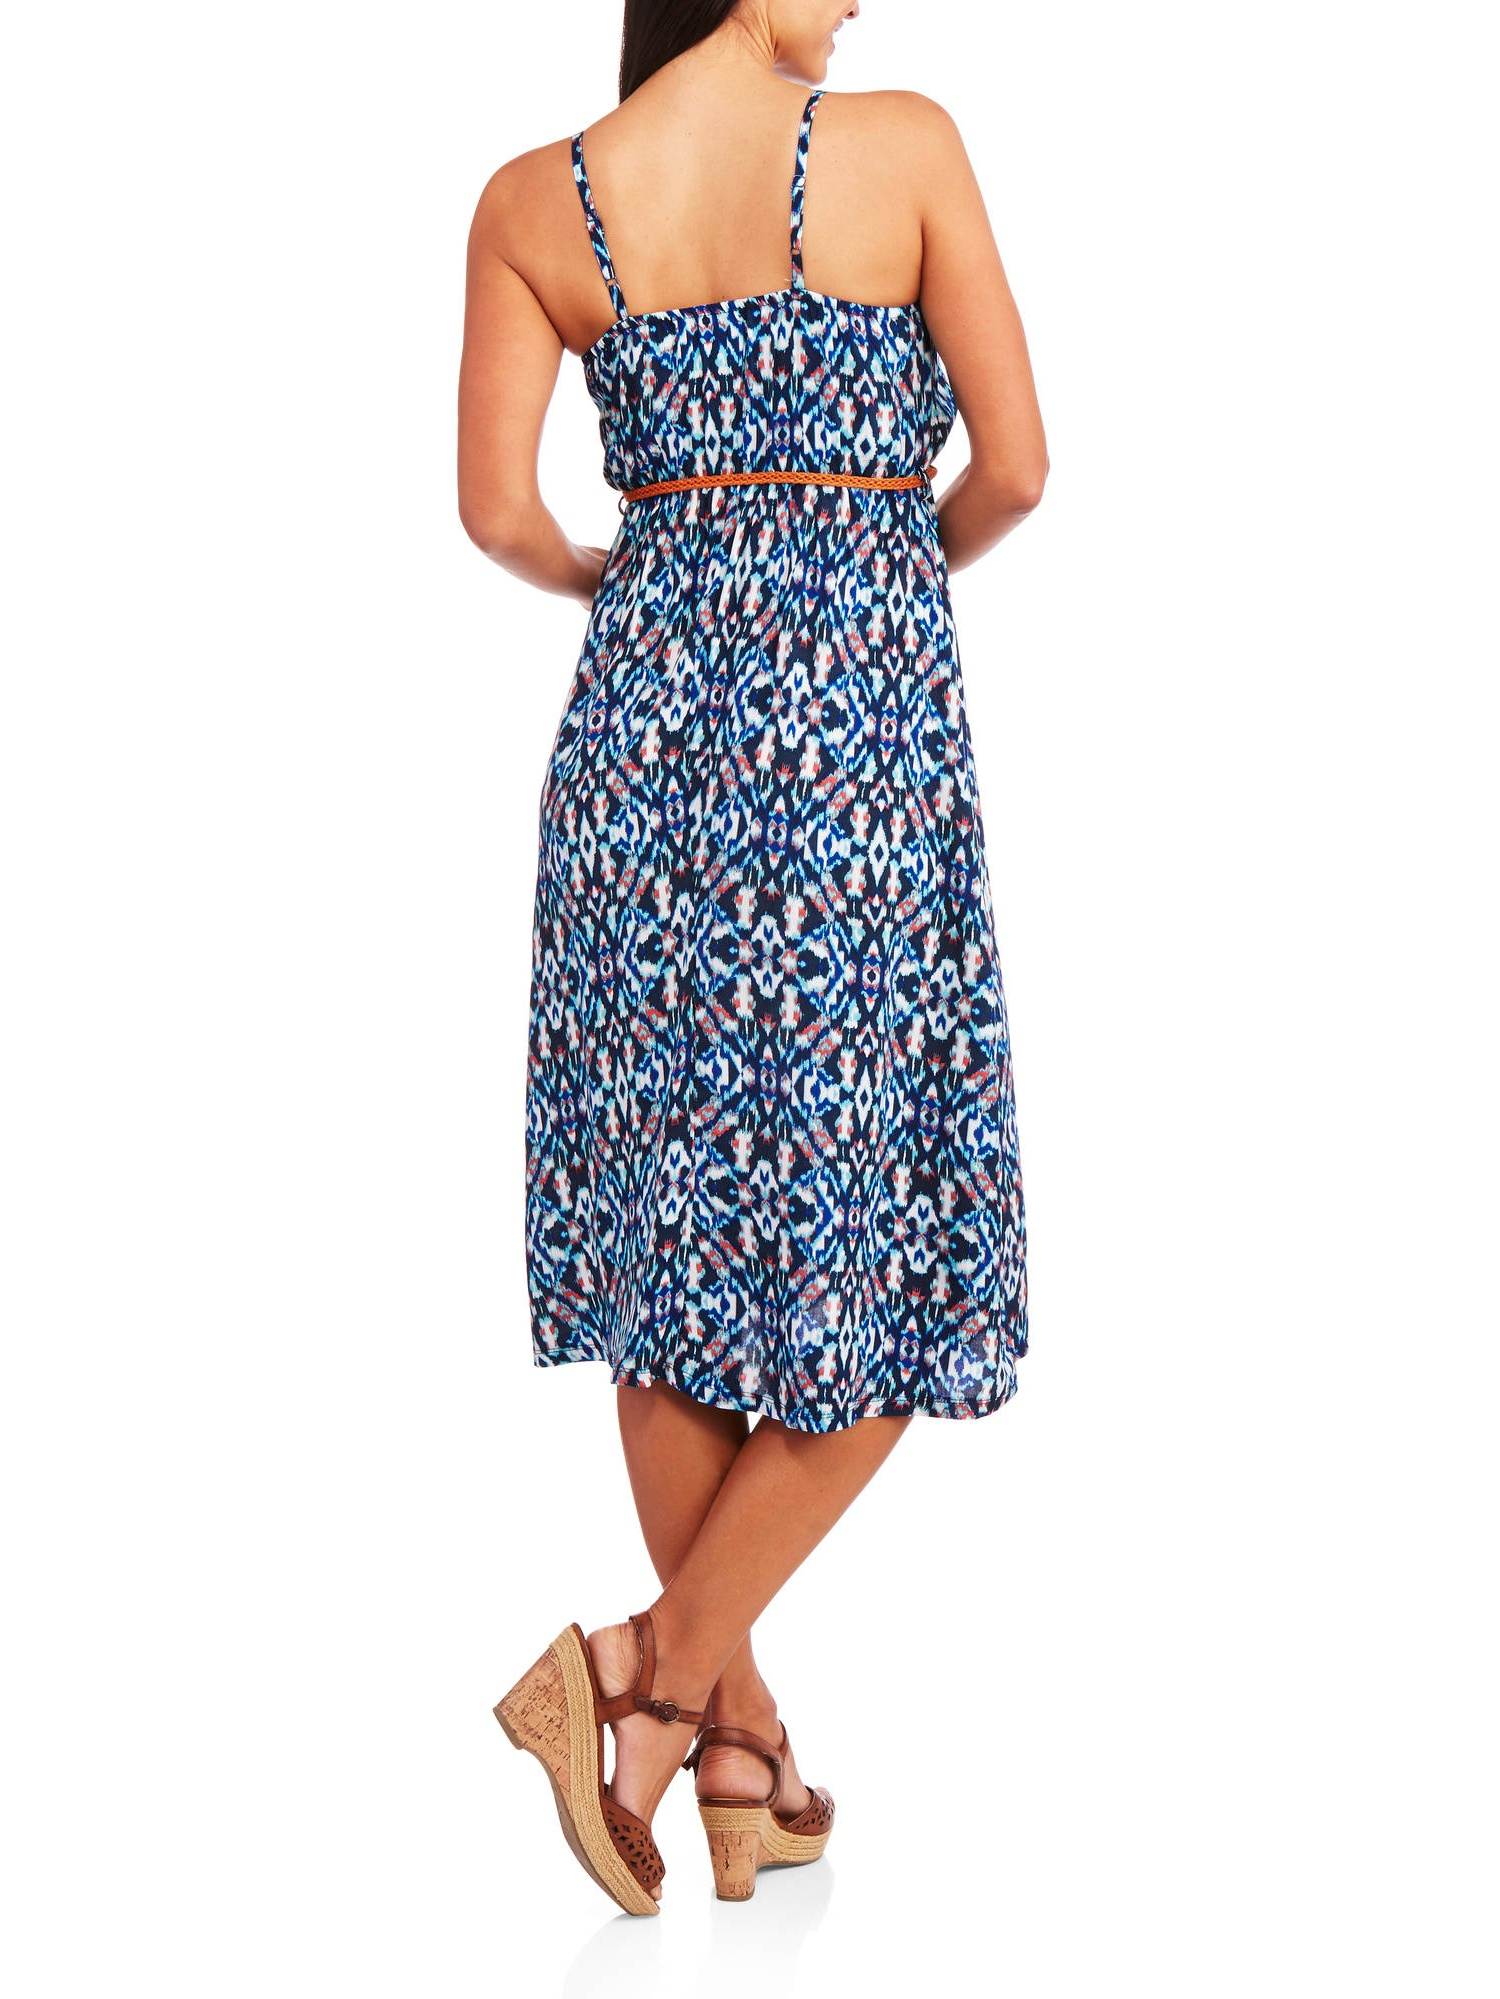 6a64e0ca3cd0 French Laundry - Women s 70s-Inspired Belted Woven Midi Dress - Walmart.com